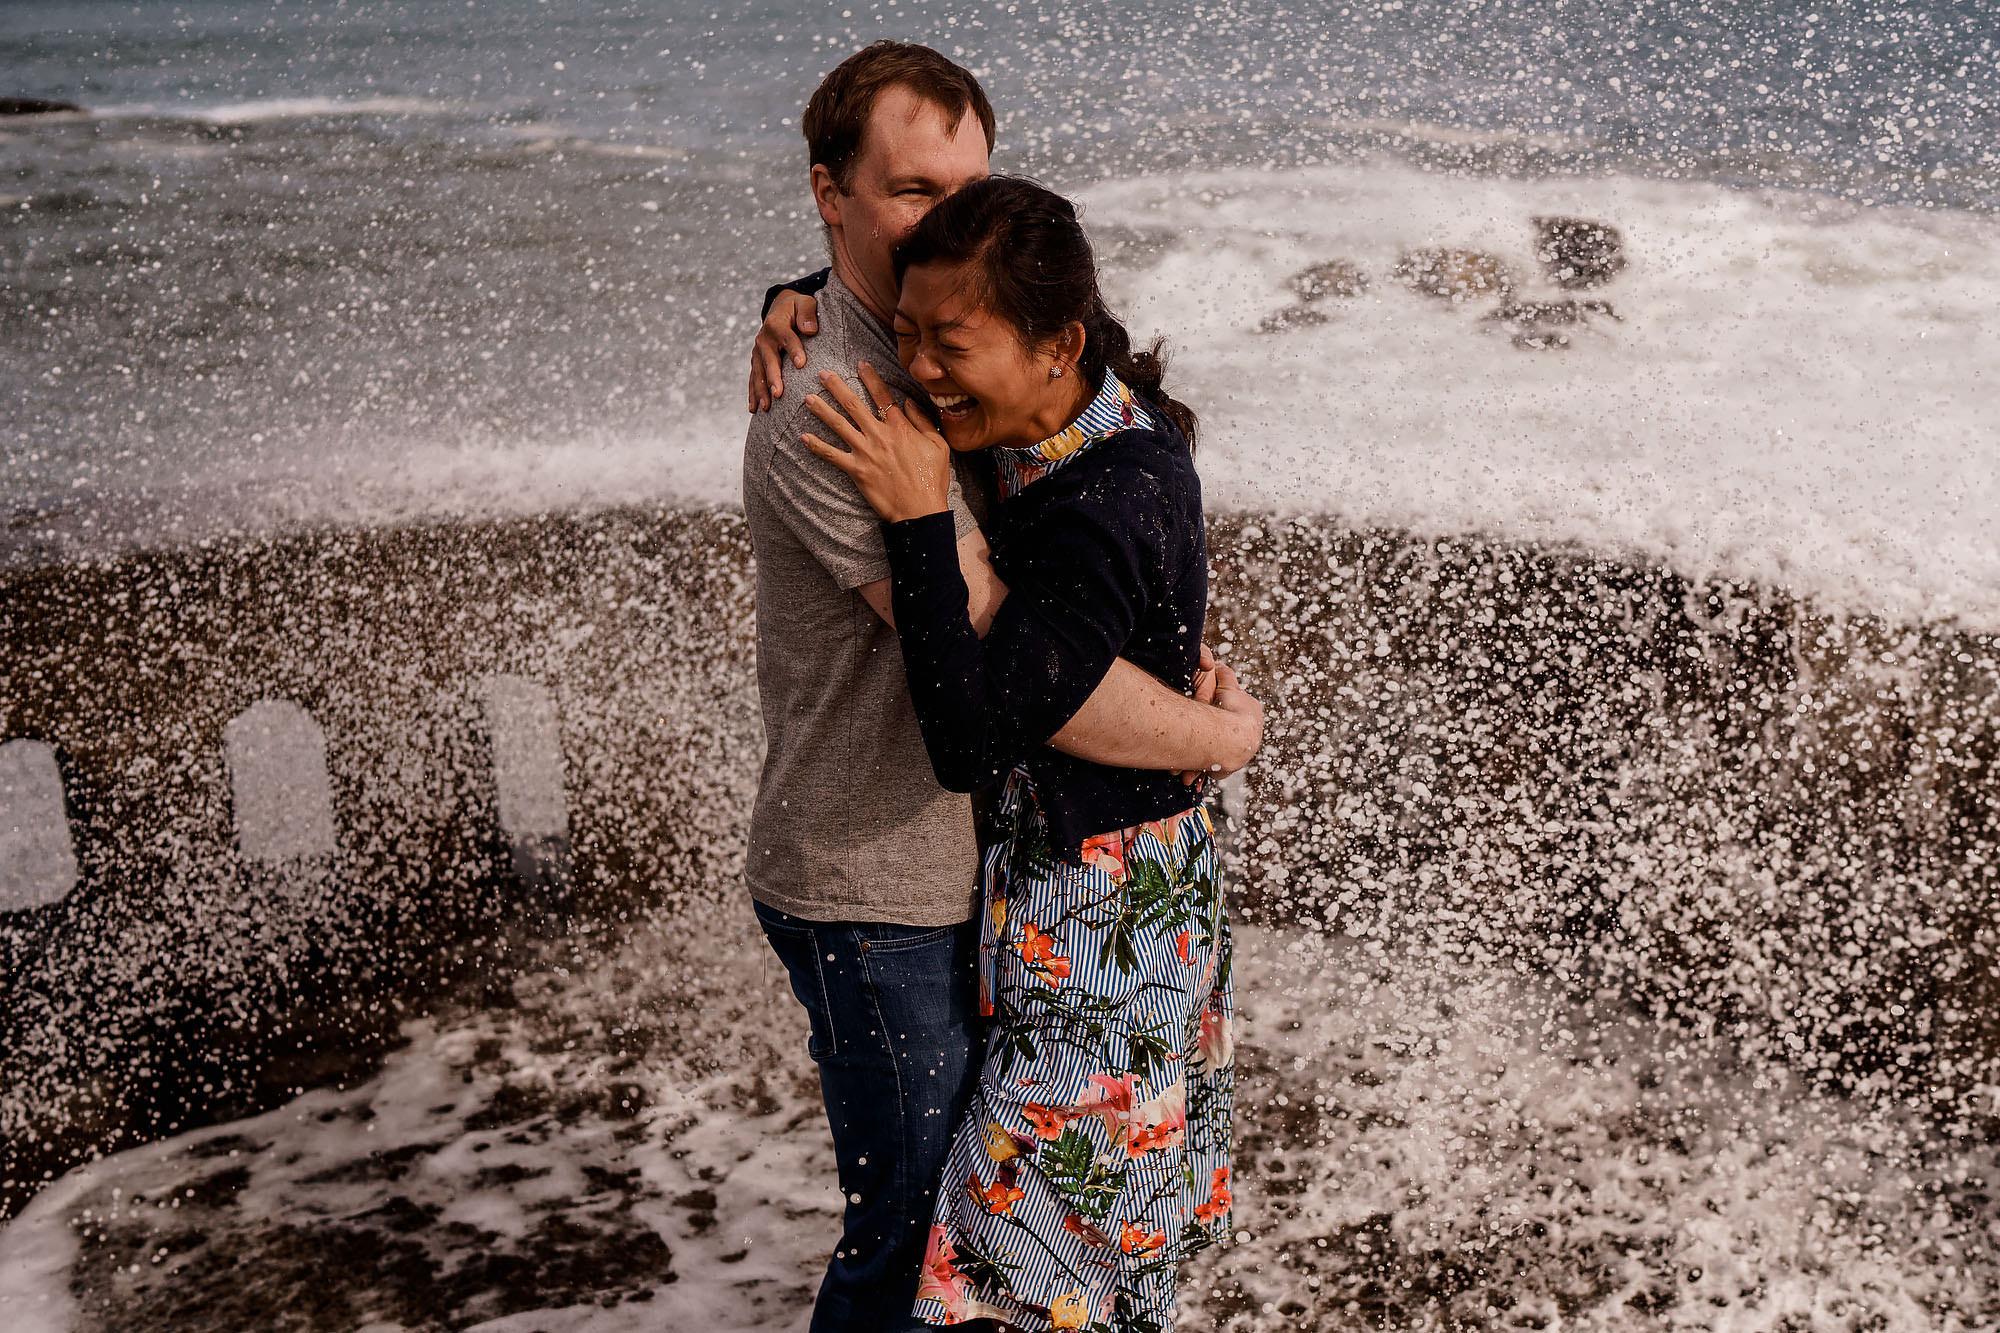 Biarritz Engagement Shoot - Destination Wedding Photography by ARJ Photography